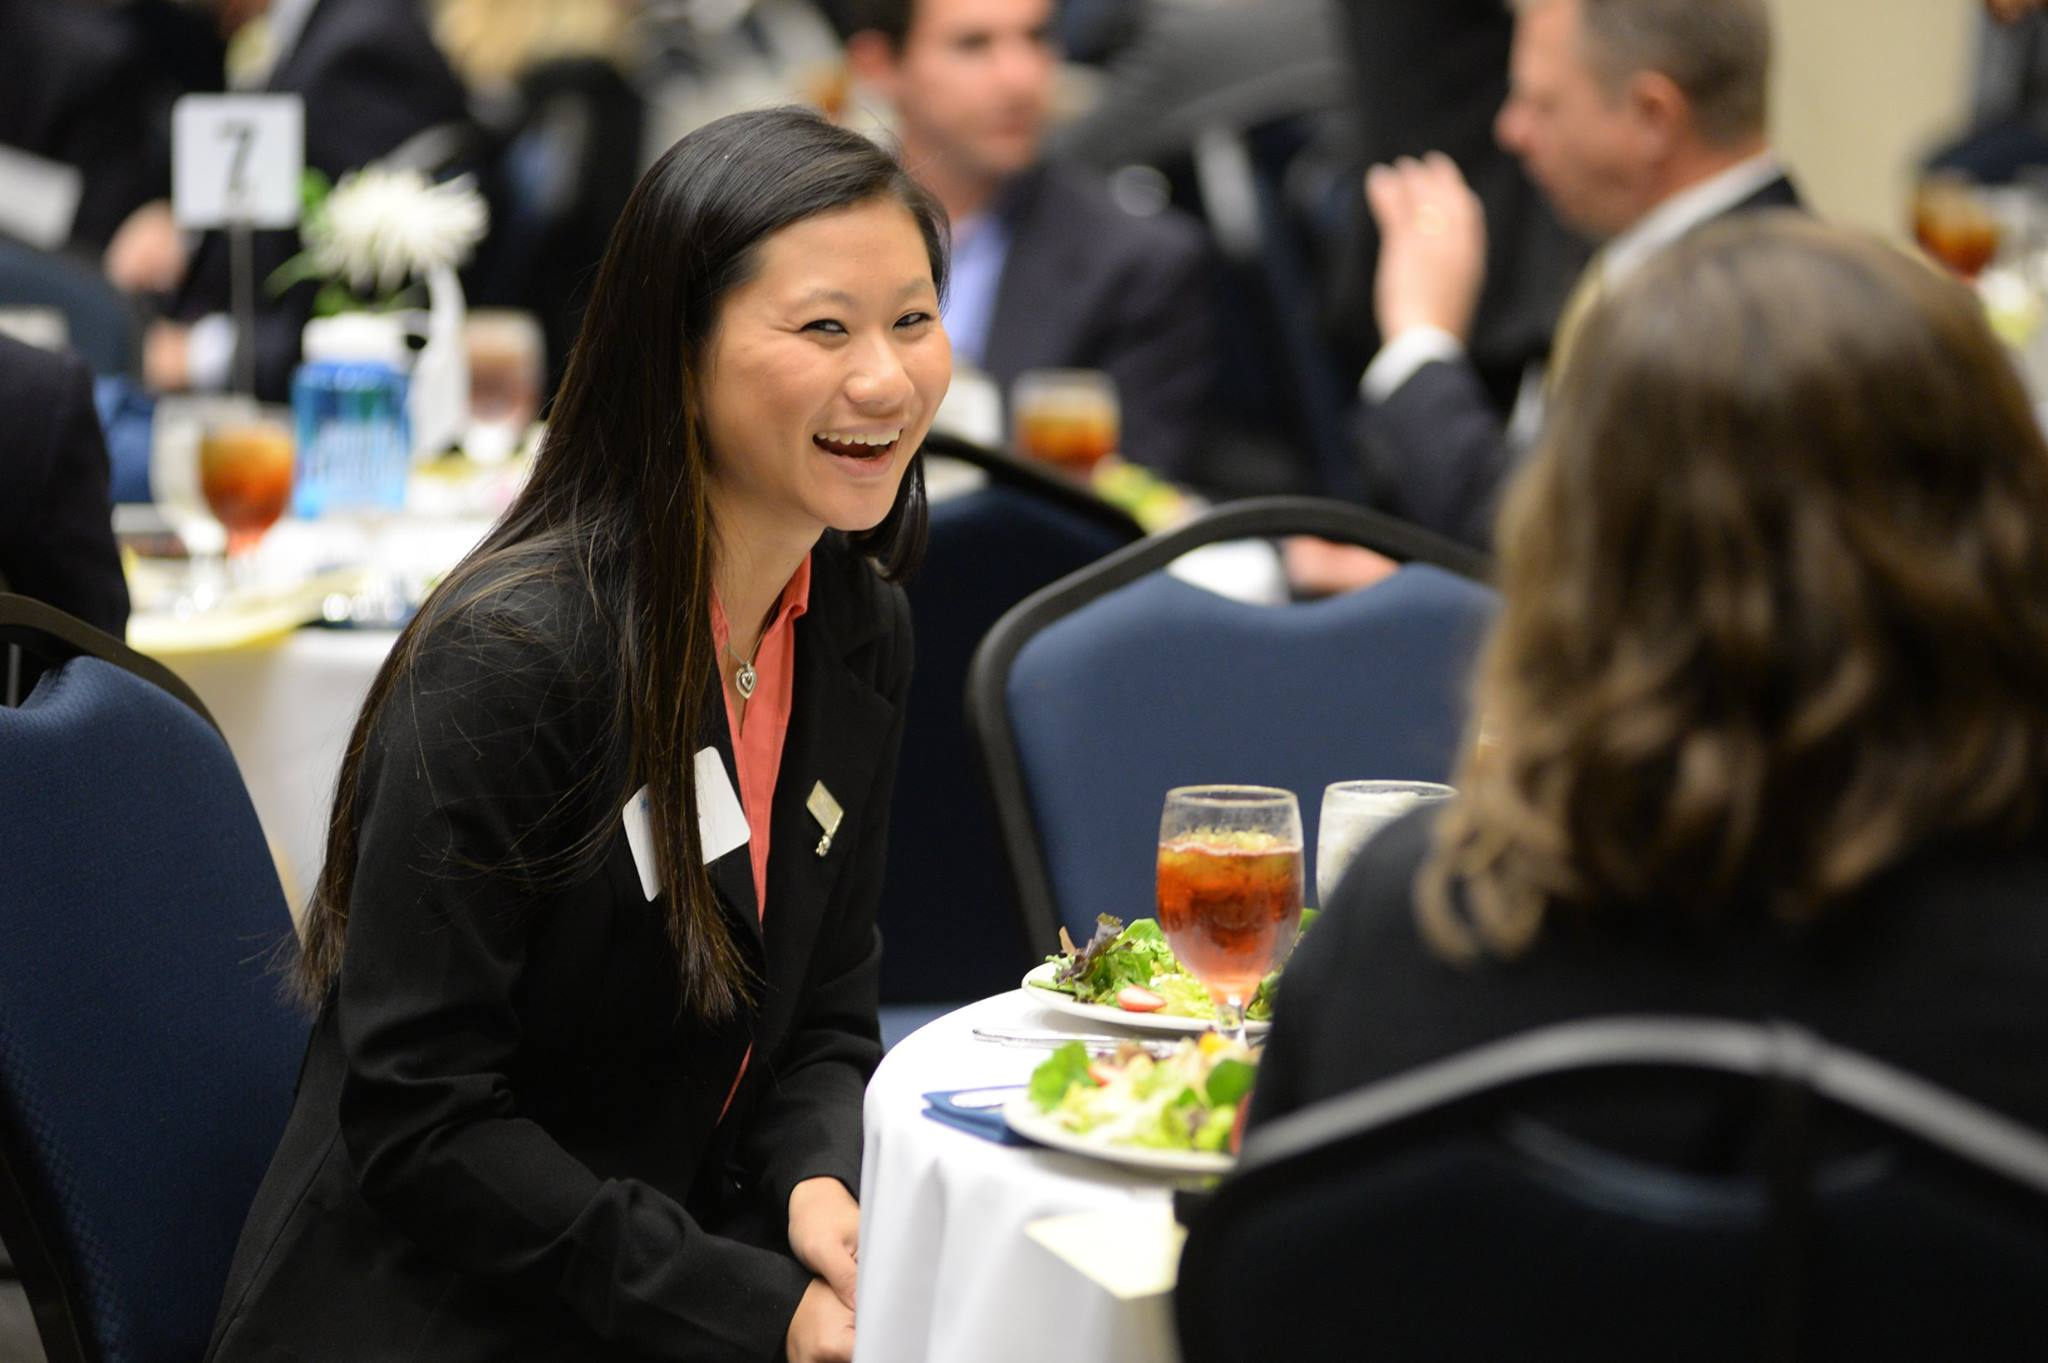 Woman talking with drink in hand at networking event